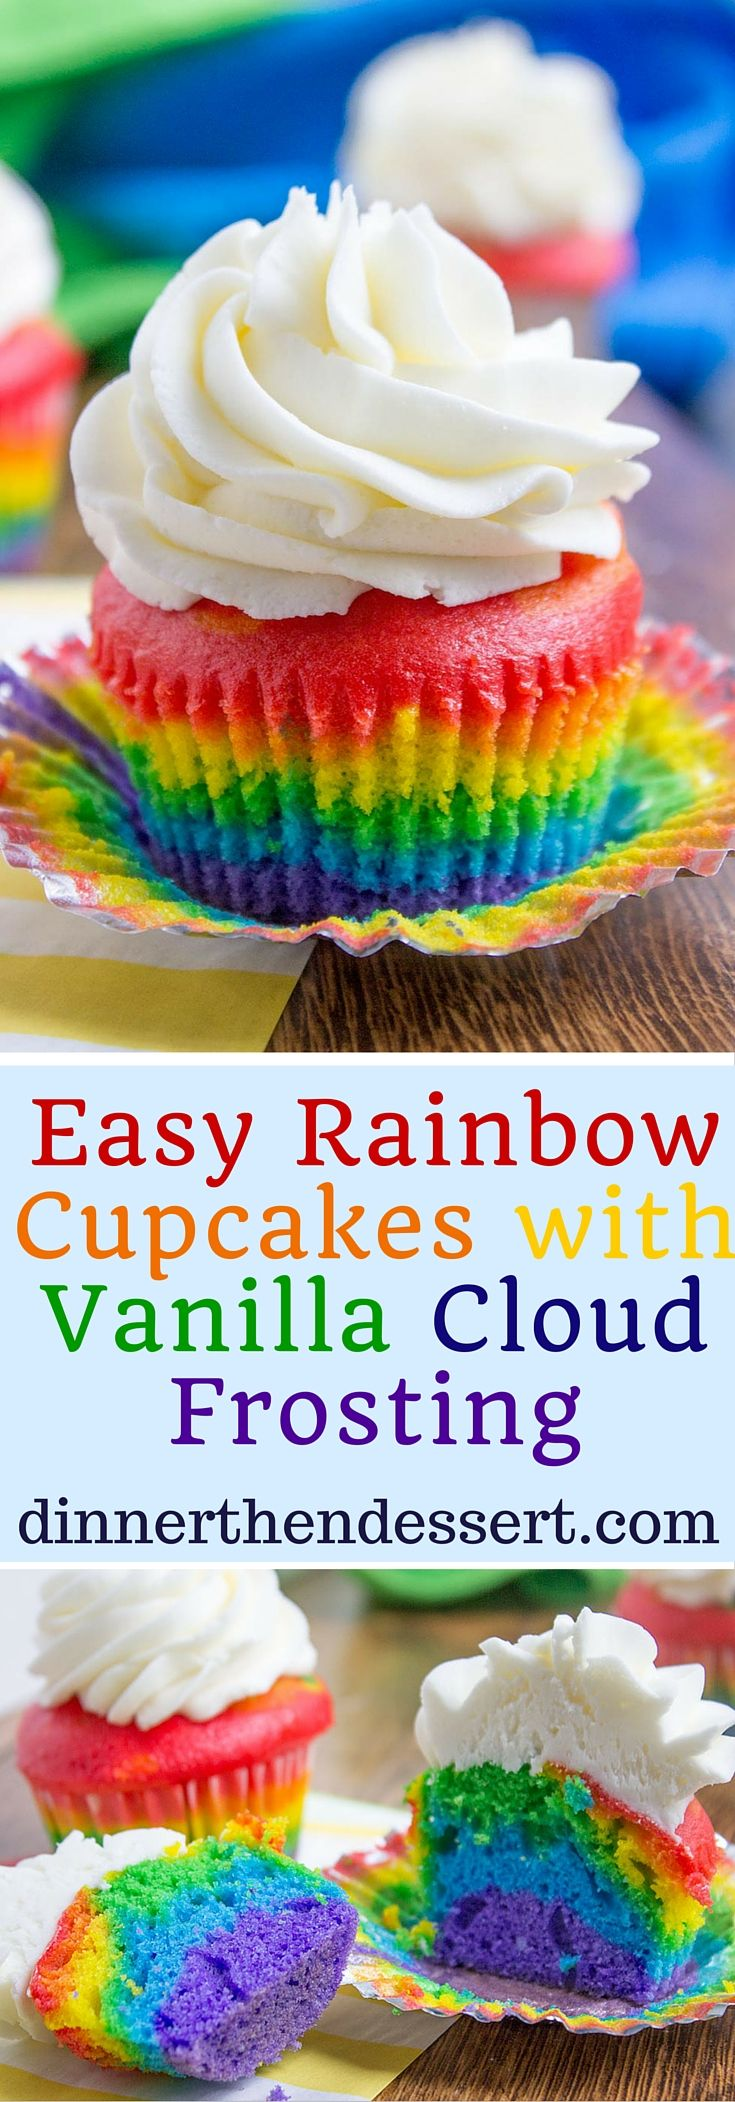 Rainbow Cupcakes With Fluffy Cloud Like Vanilla Frosting